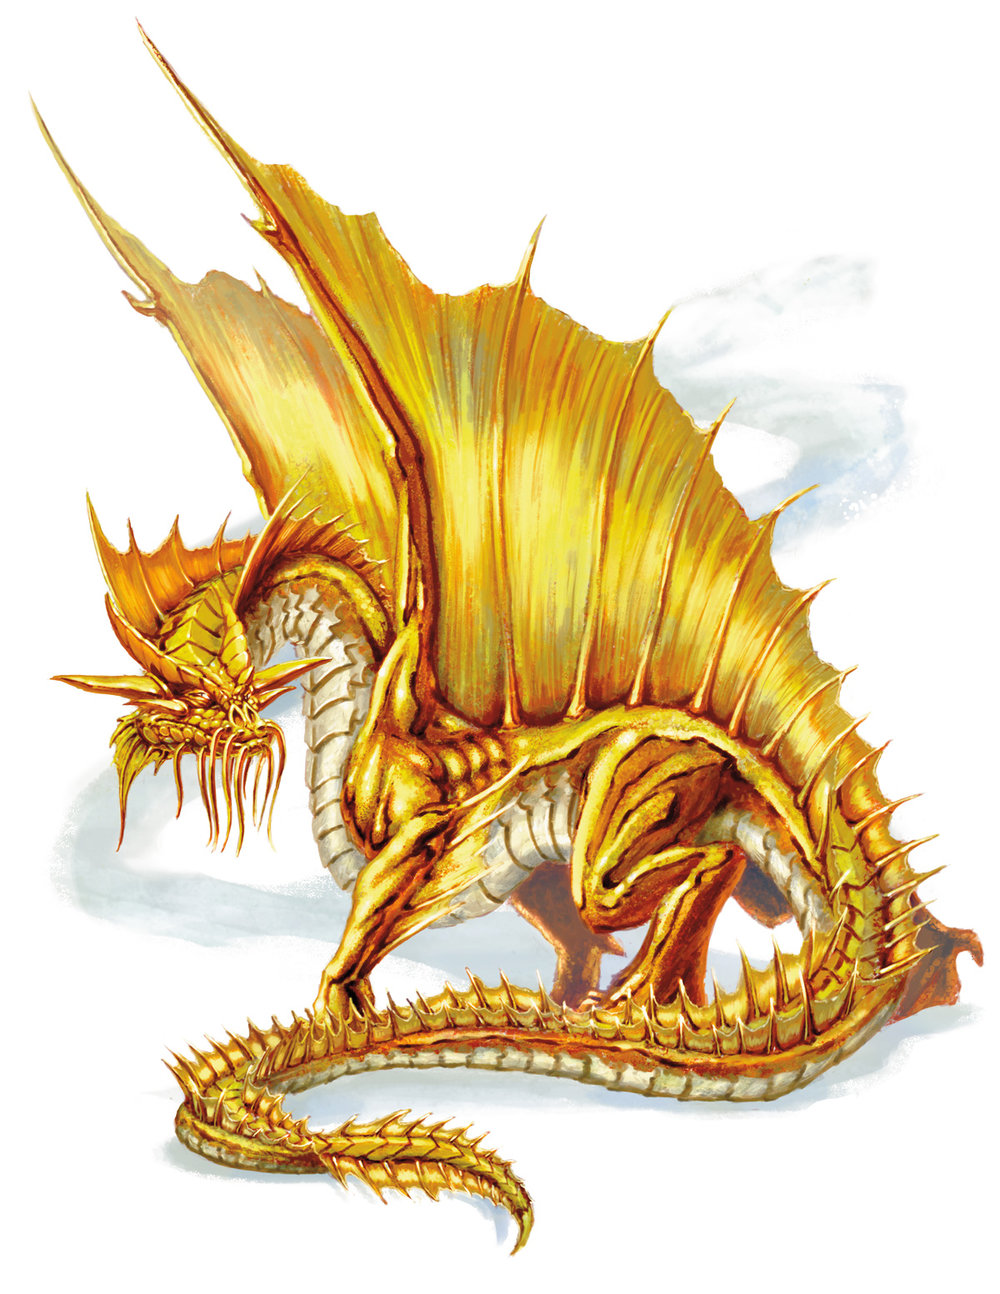 Monster_Manual_5e_-_Dragon,_Gold_-_p113.jpg